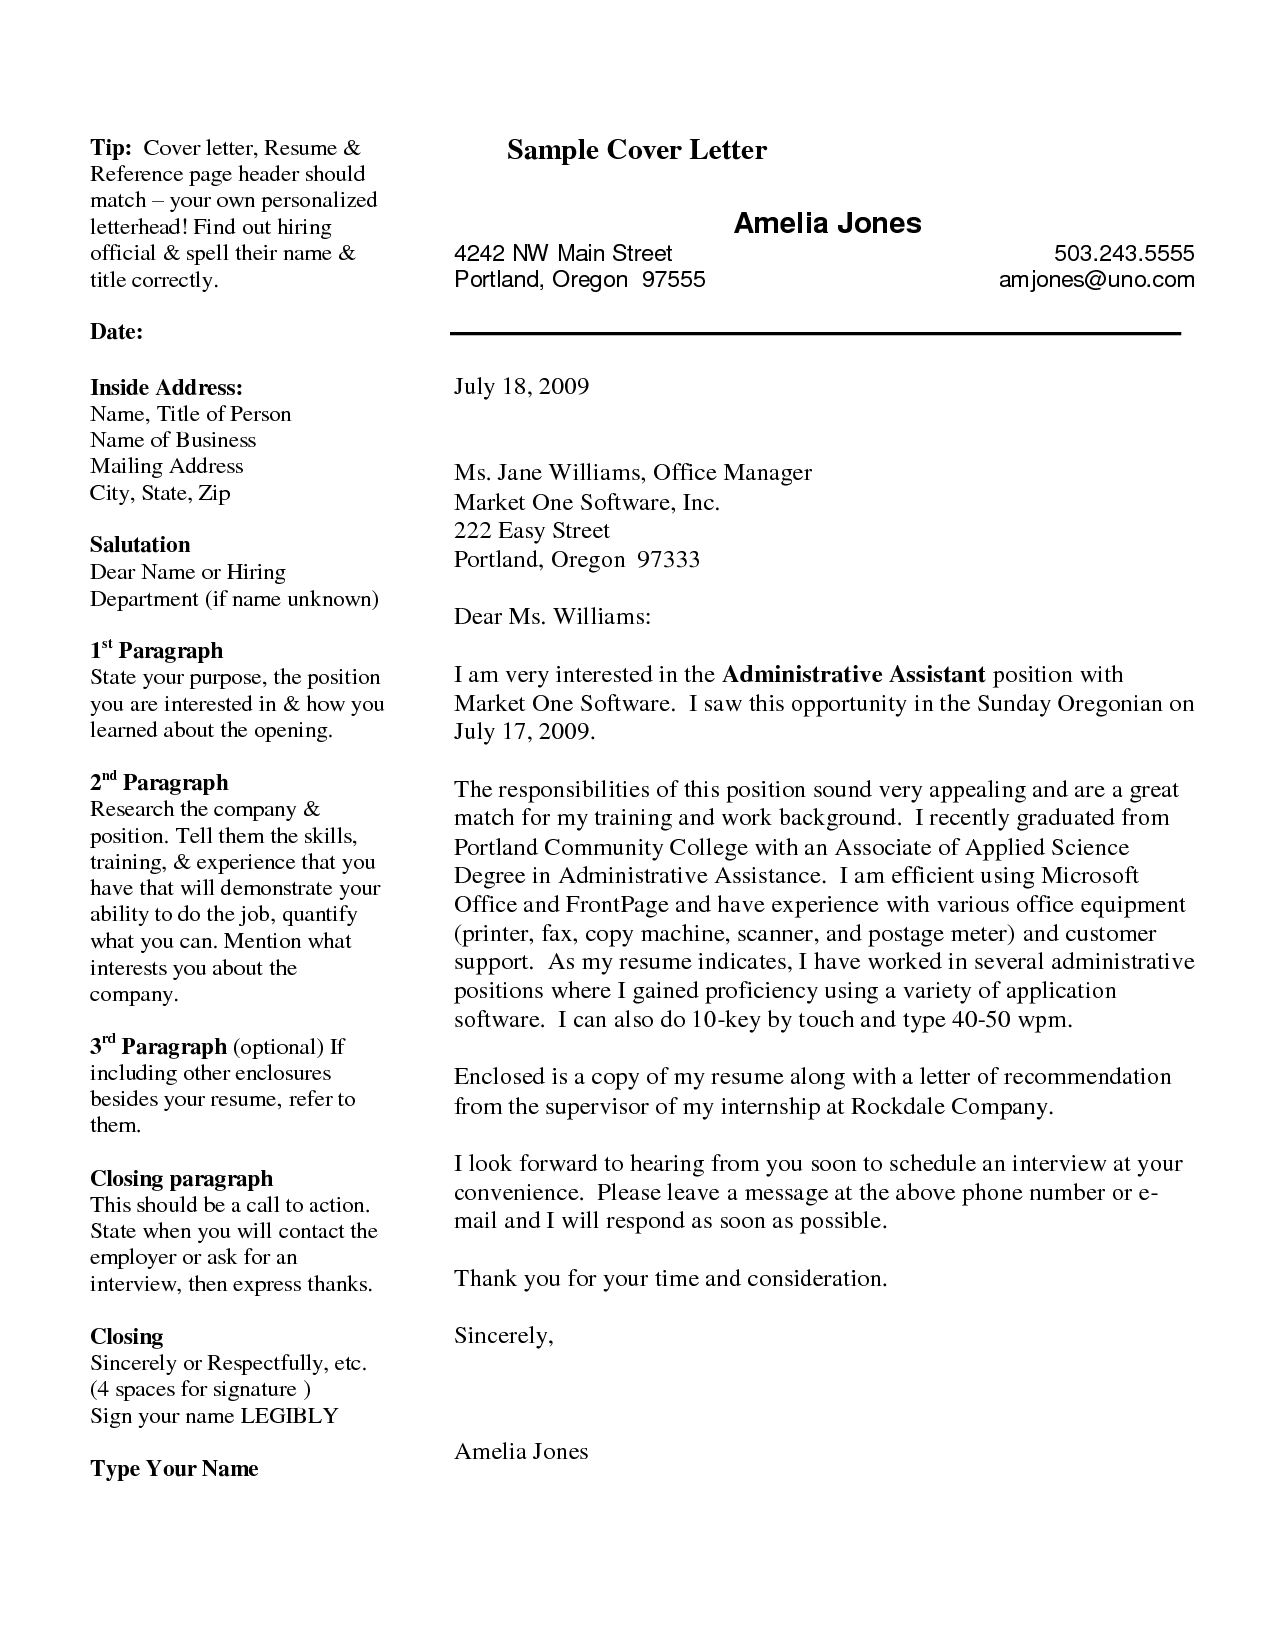 Windows word cover letter template